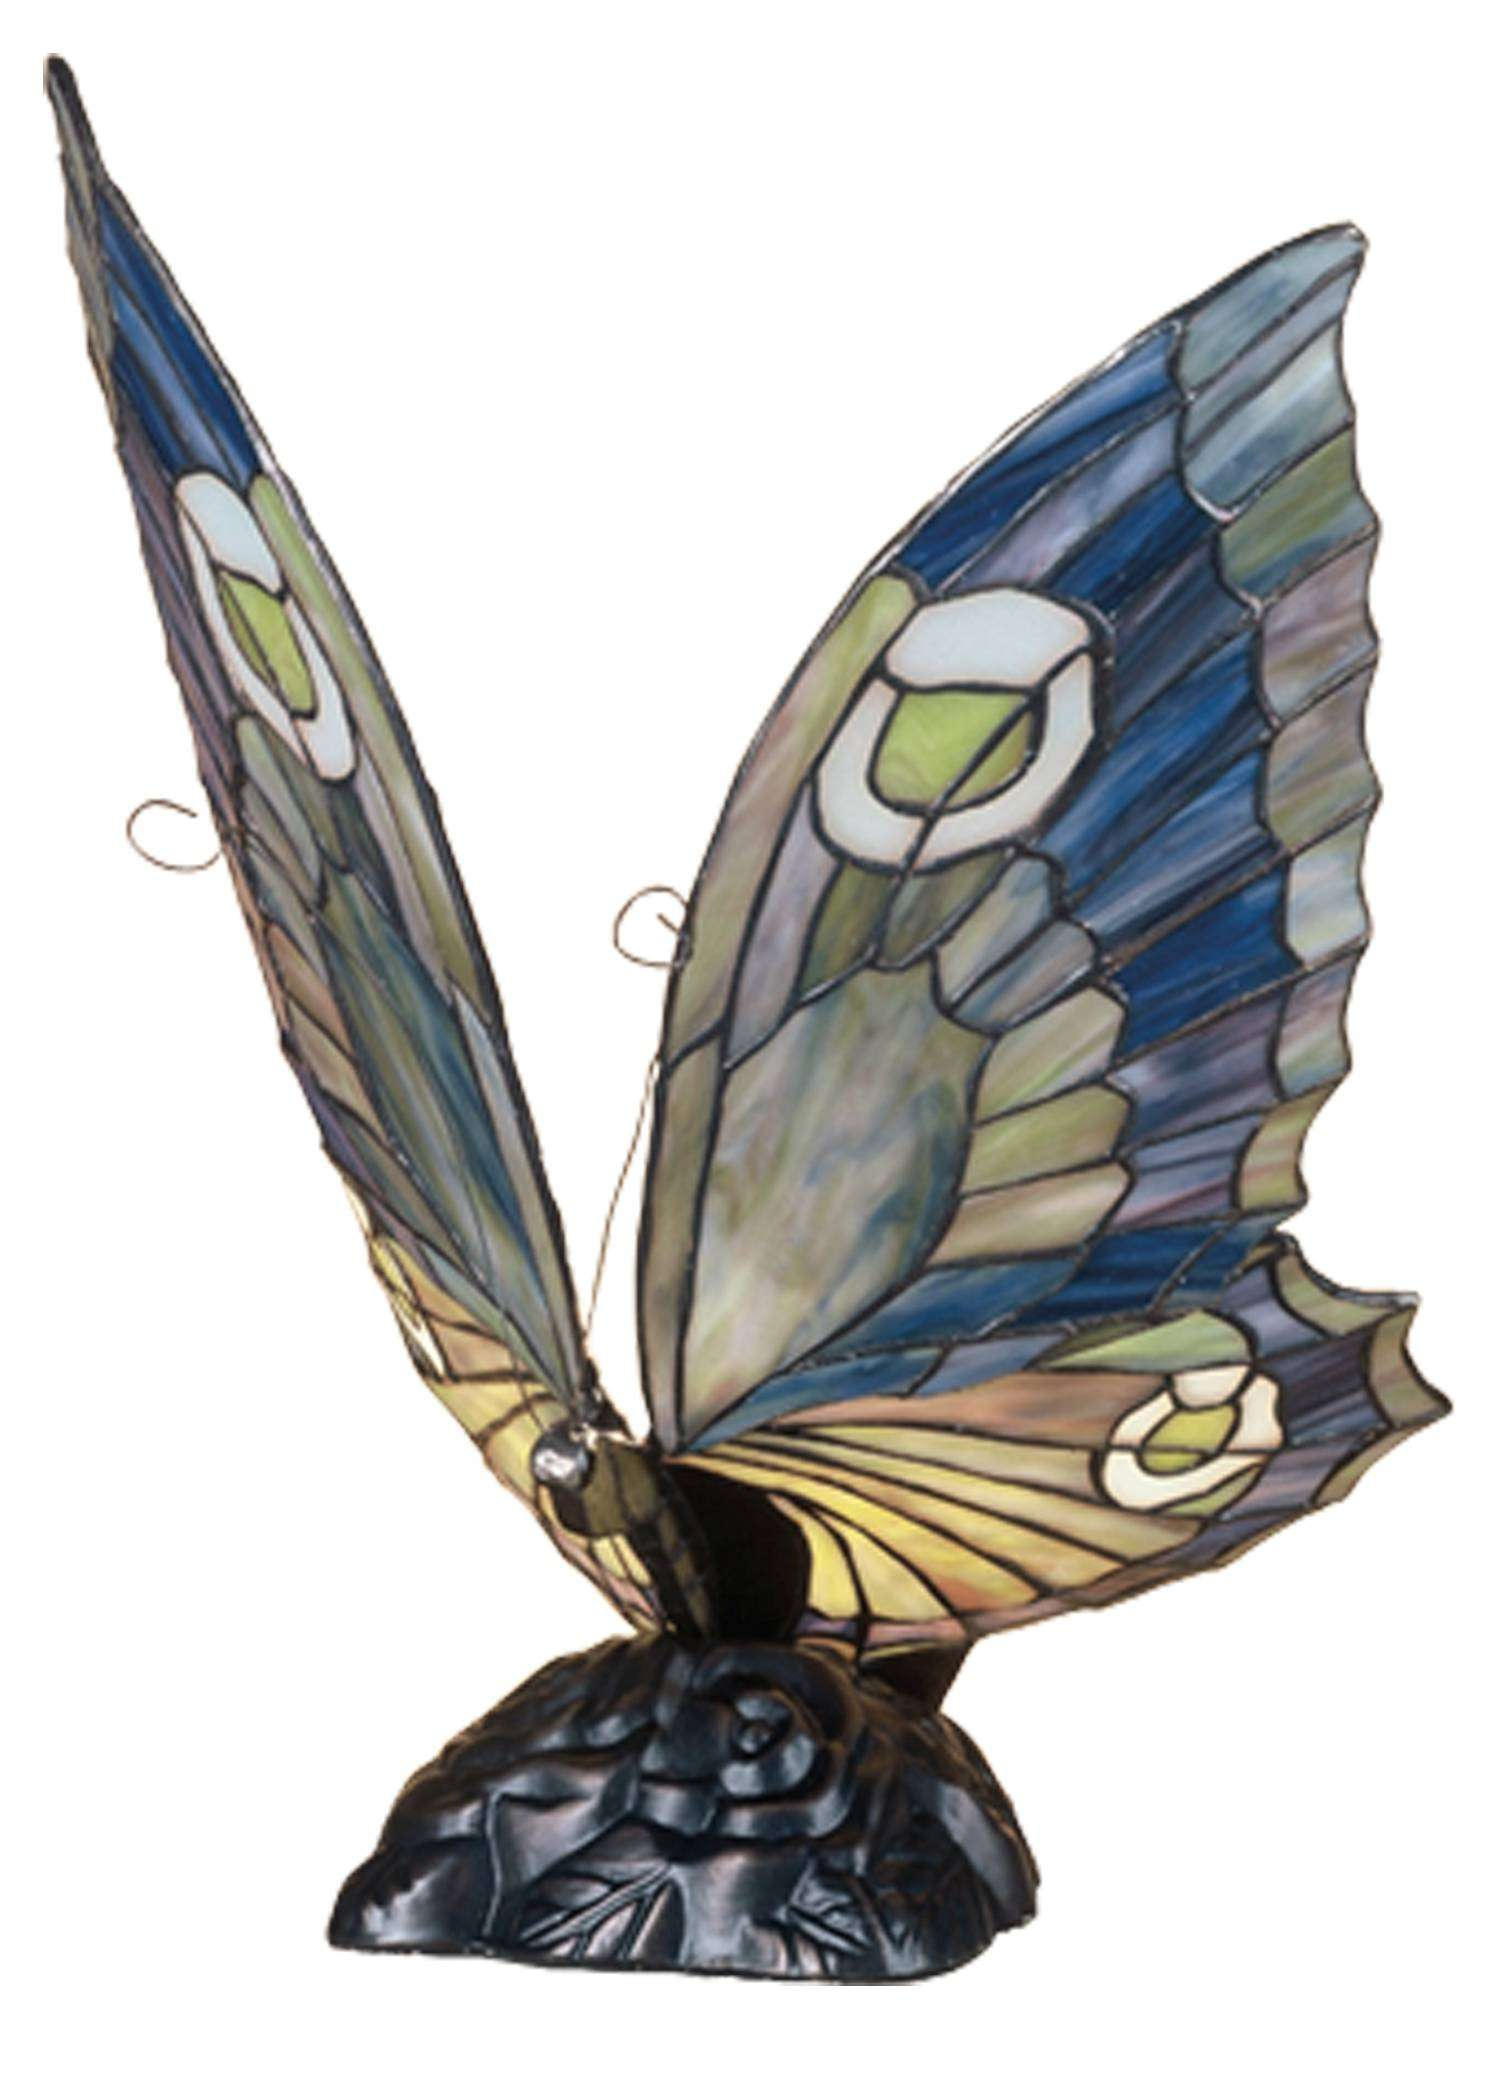 Meyda Tiffany 48017 Butterfly Accent Lamp in Copperfoil finish